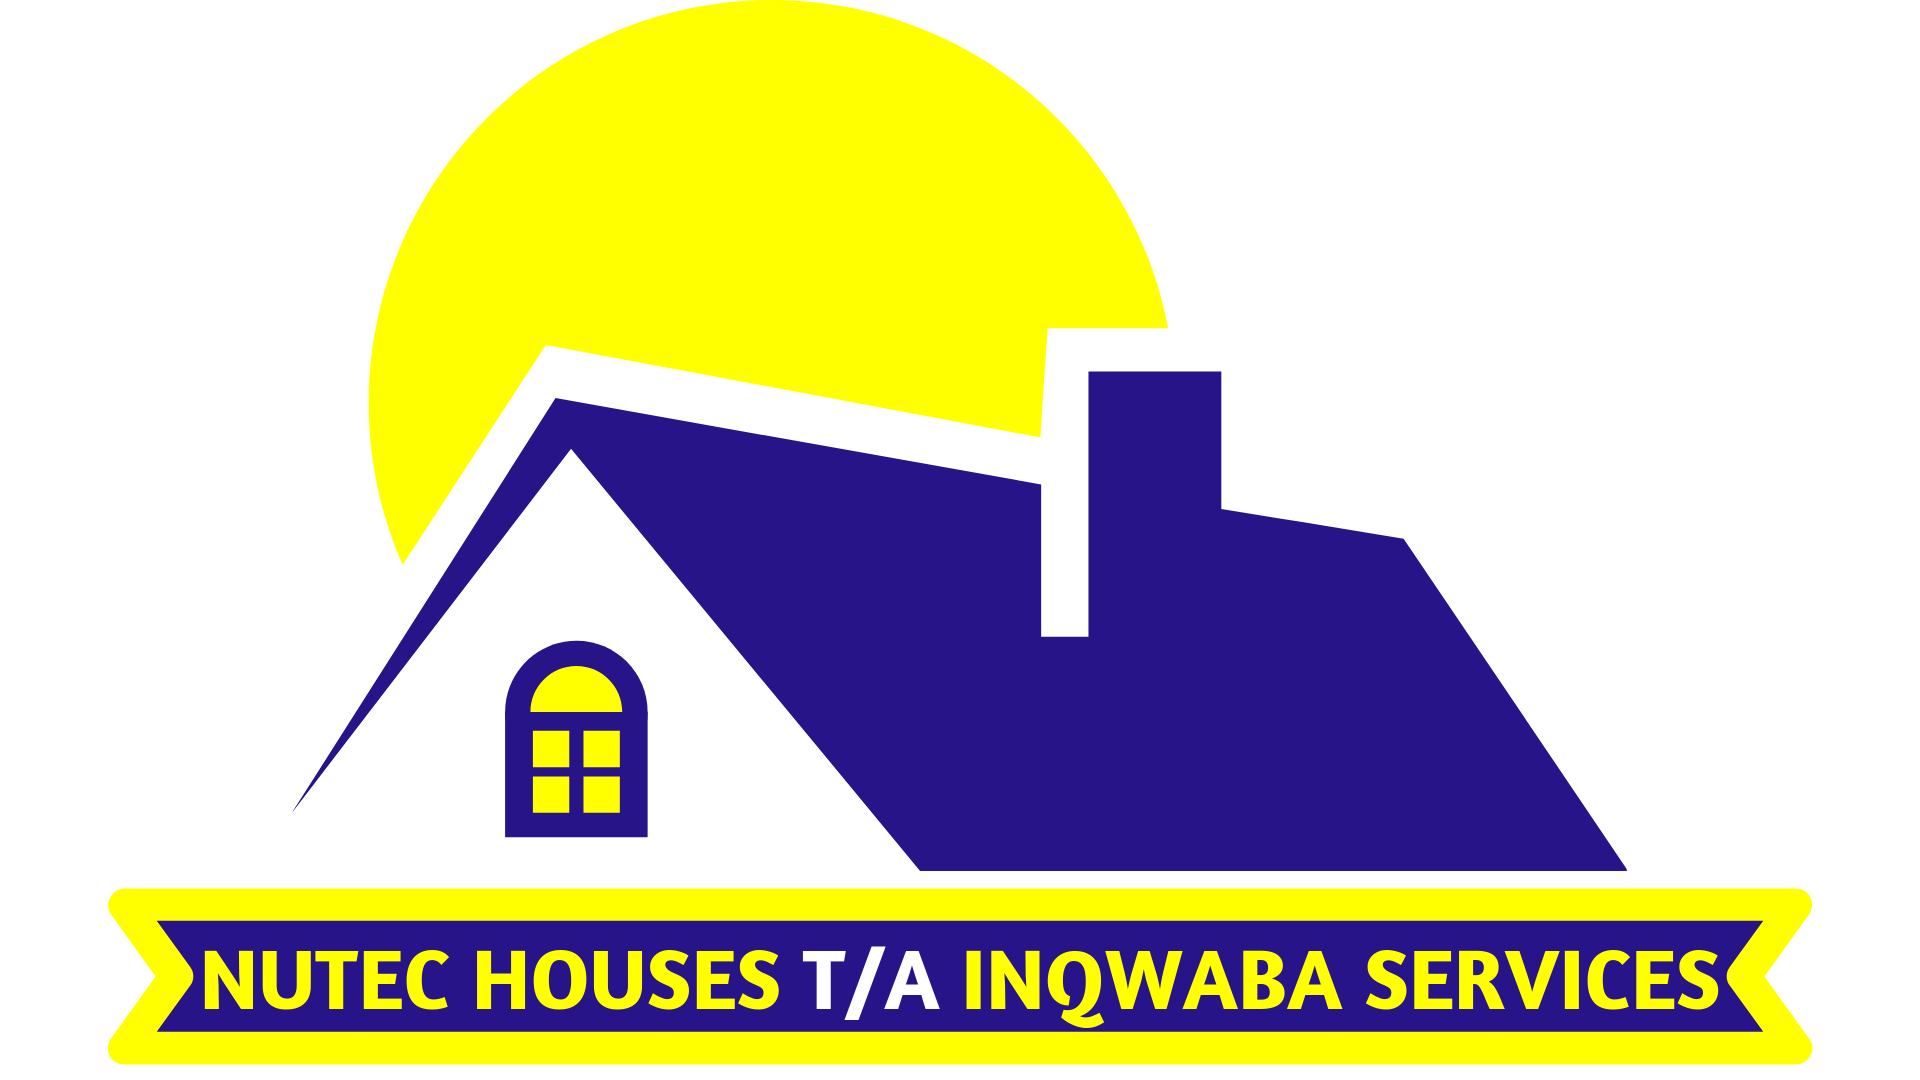 Nutec Houses T/A Inqwaba Services